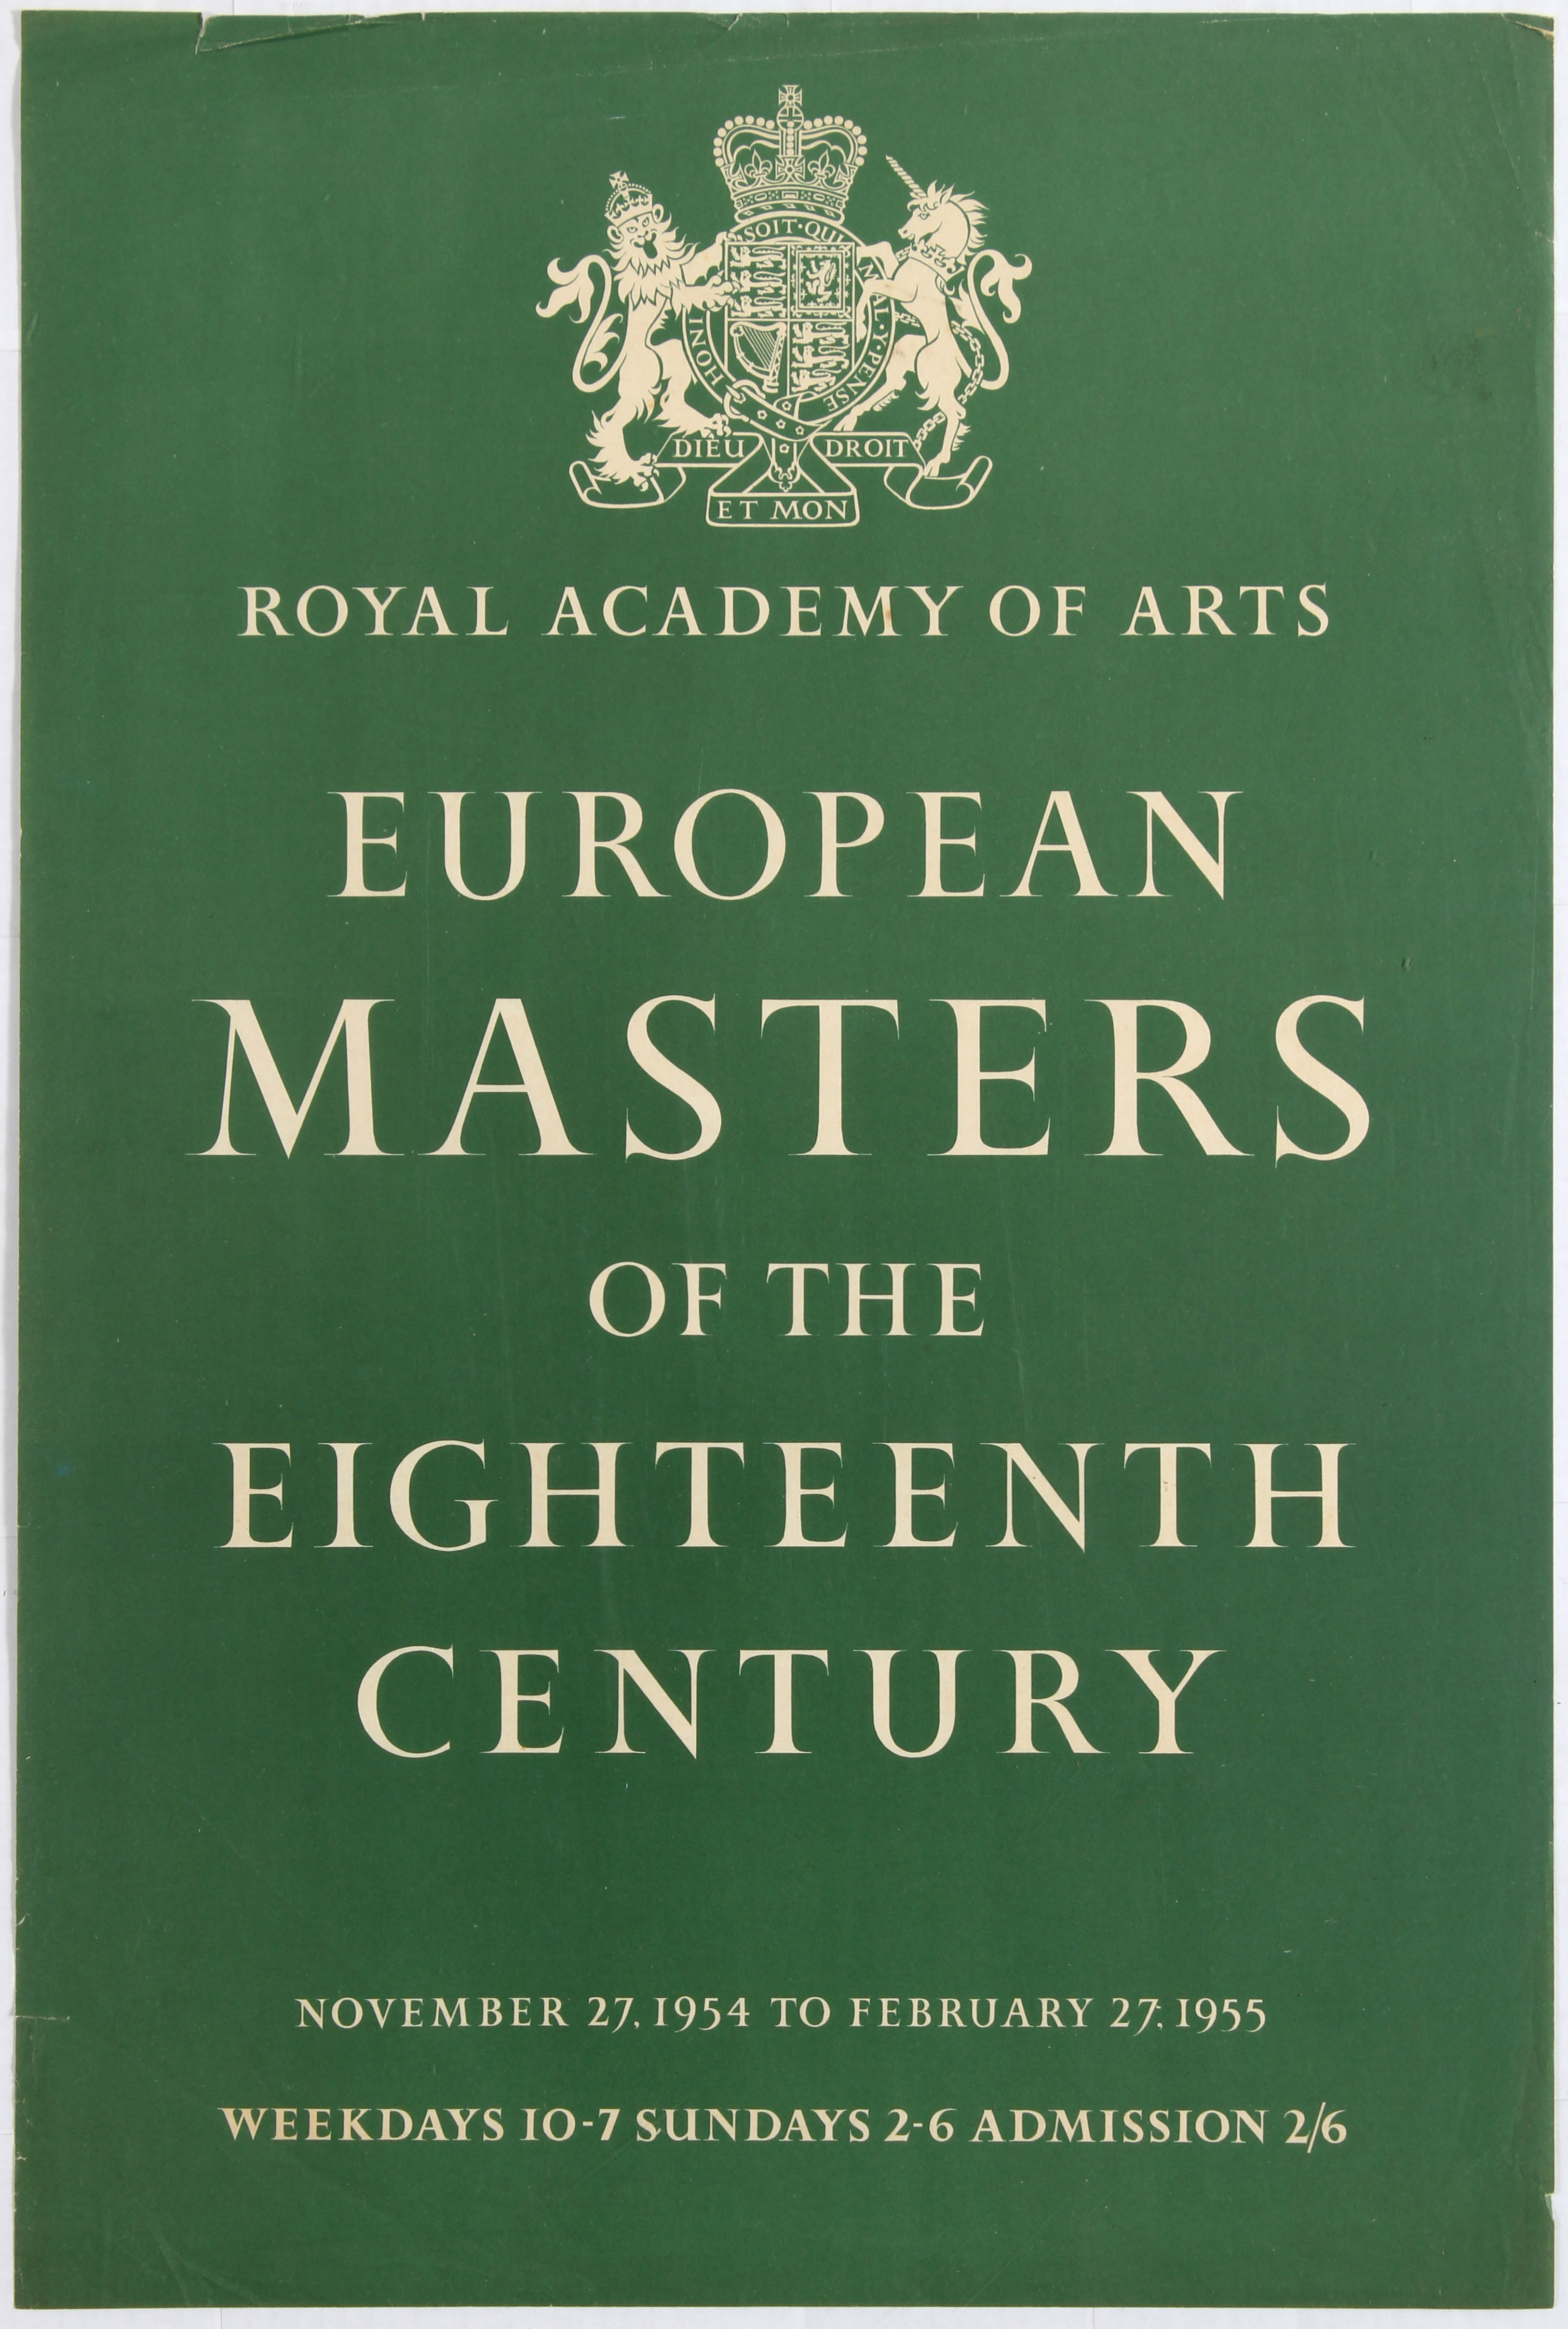 Lot 1506 - Advertising Poster Royal Academy of Arts European Masters of the 18th Century